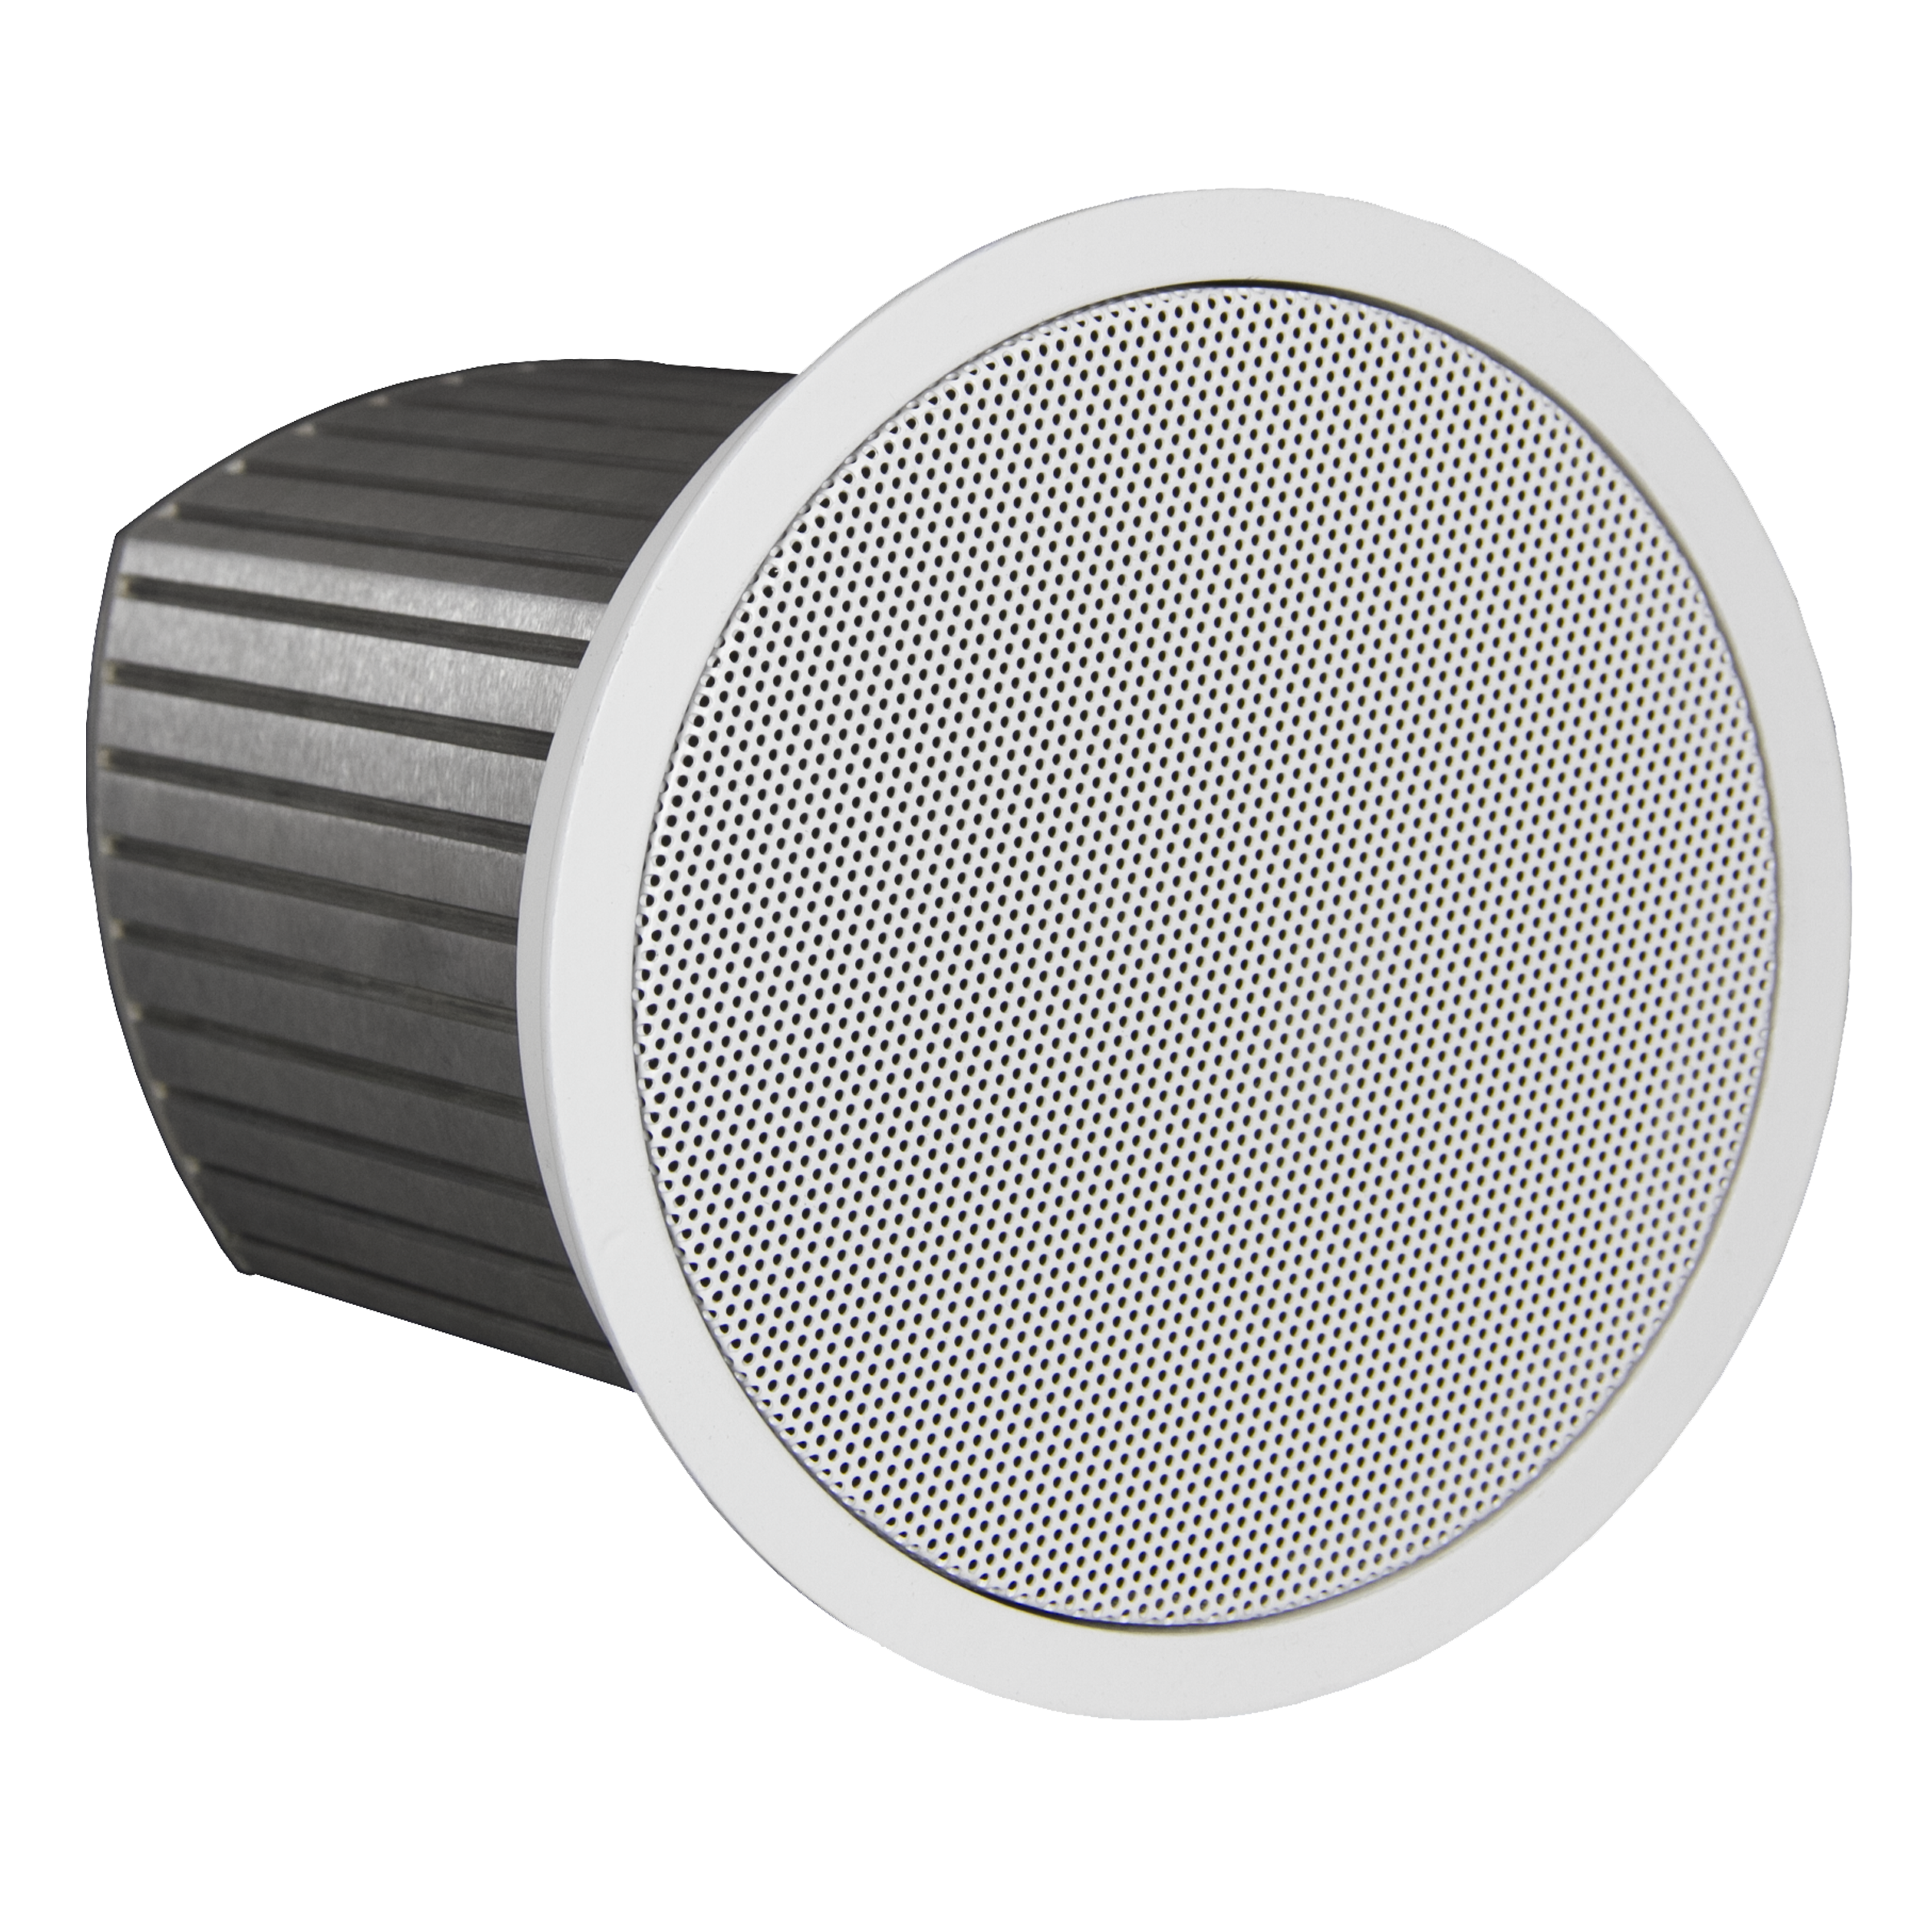 atlas itm speaker in a ceiling loading driver used image ceilings coaxial sound compression is